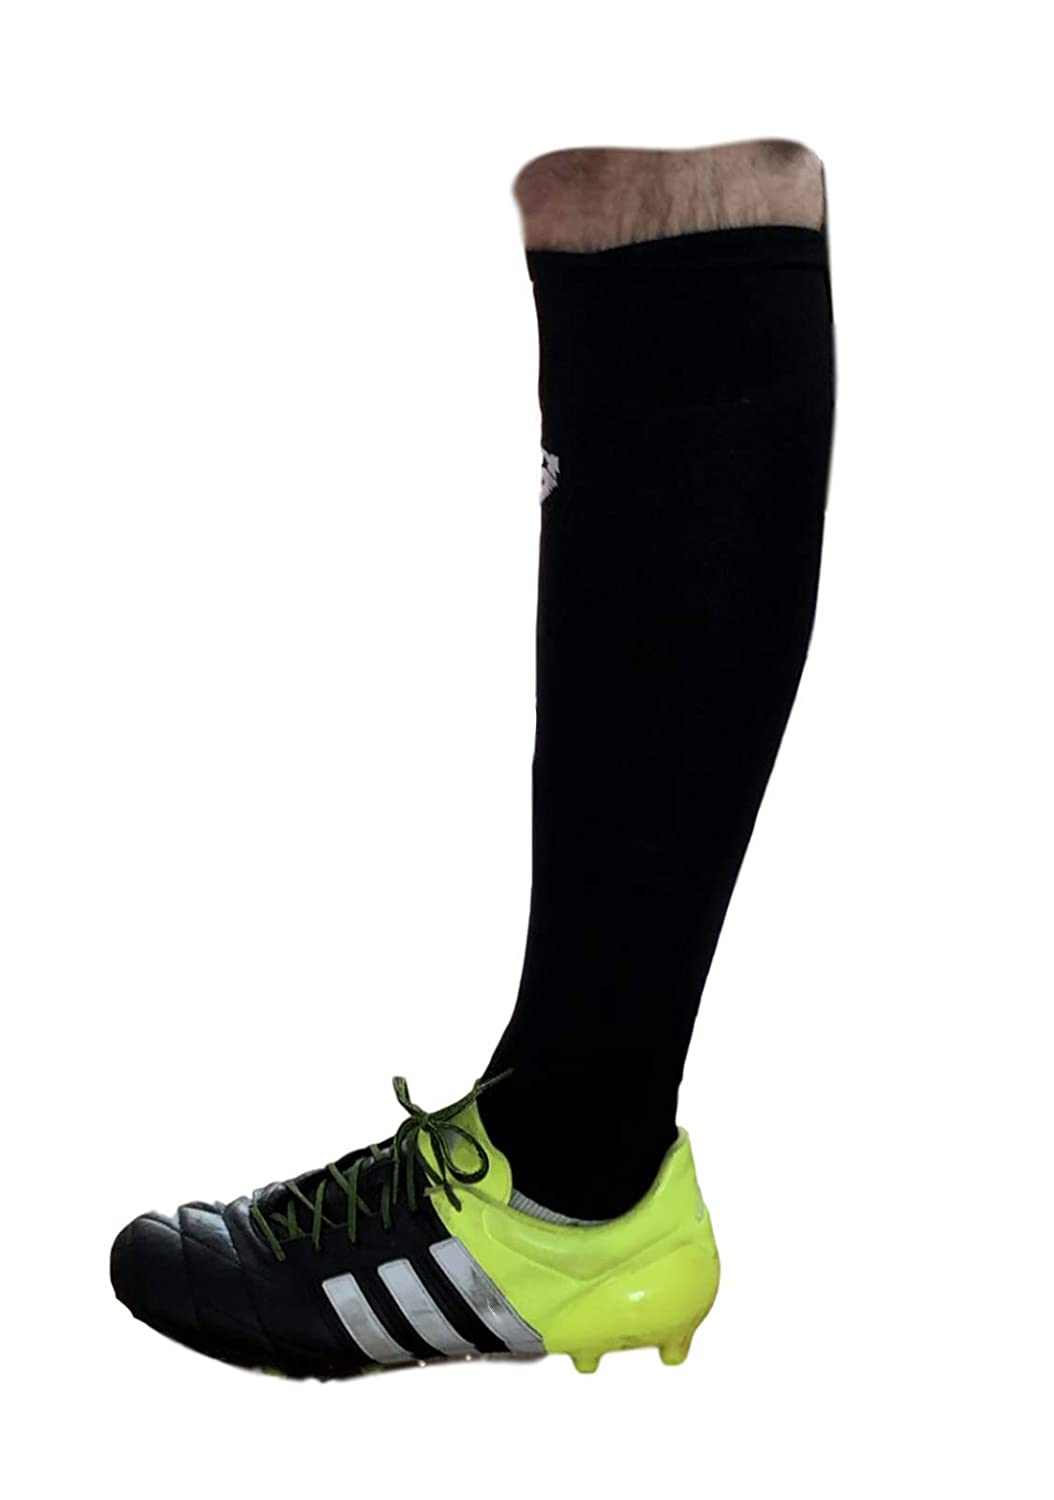 Camps Workouts Wear Over Socks Training Soccer /& All Sports NRG247 Over The Calf Sports Sleeves School